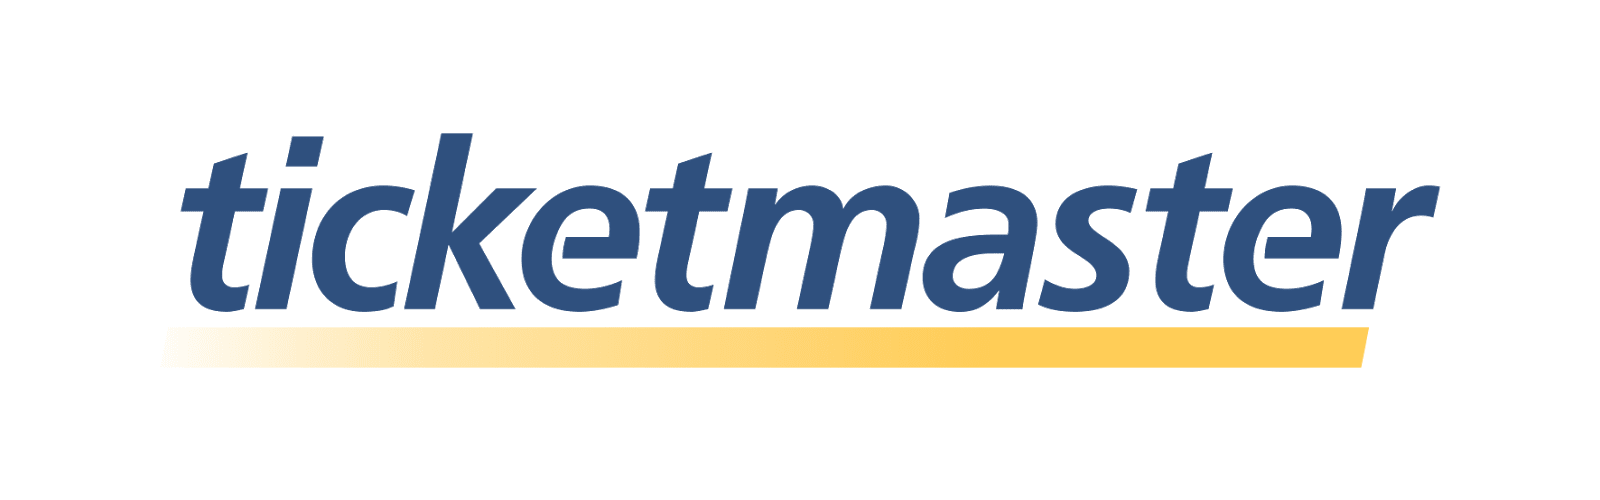 Ticketmaster Suit Continues Against Broker For Illegal Bot Use